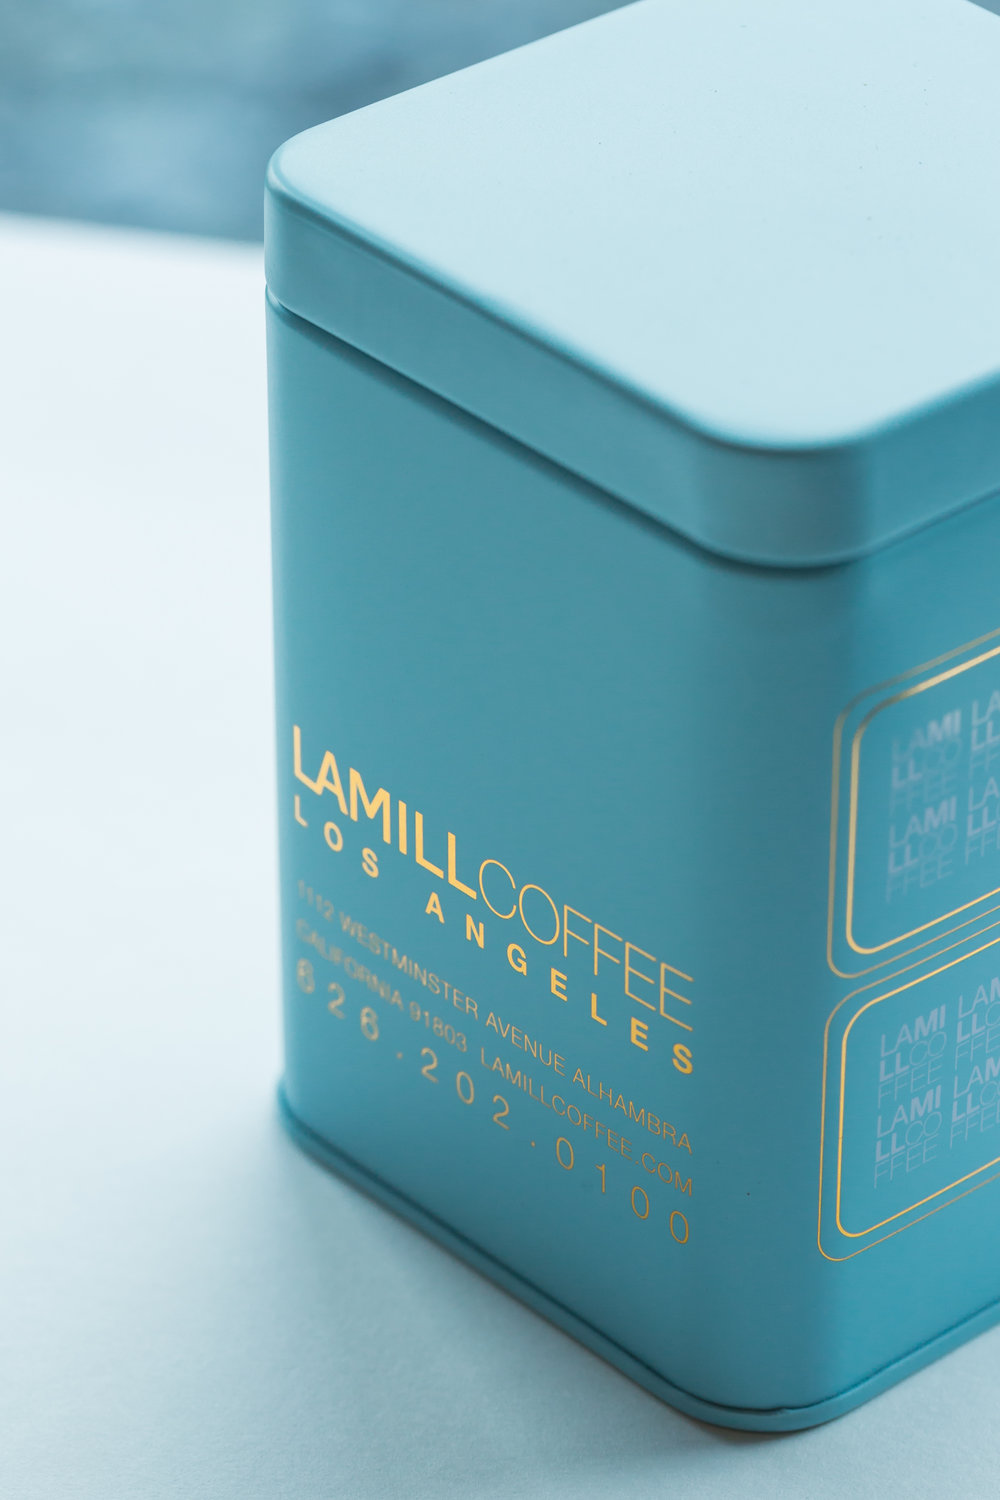 Lamill Coffee. Los Angeles.